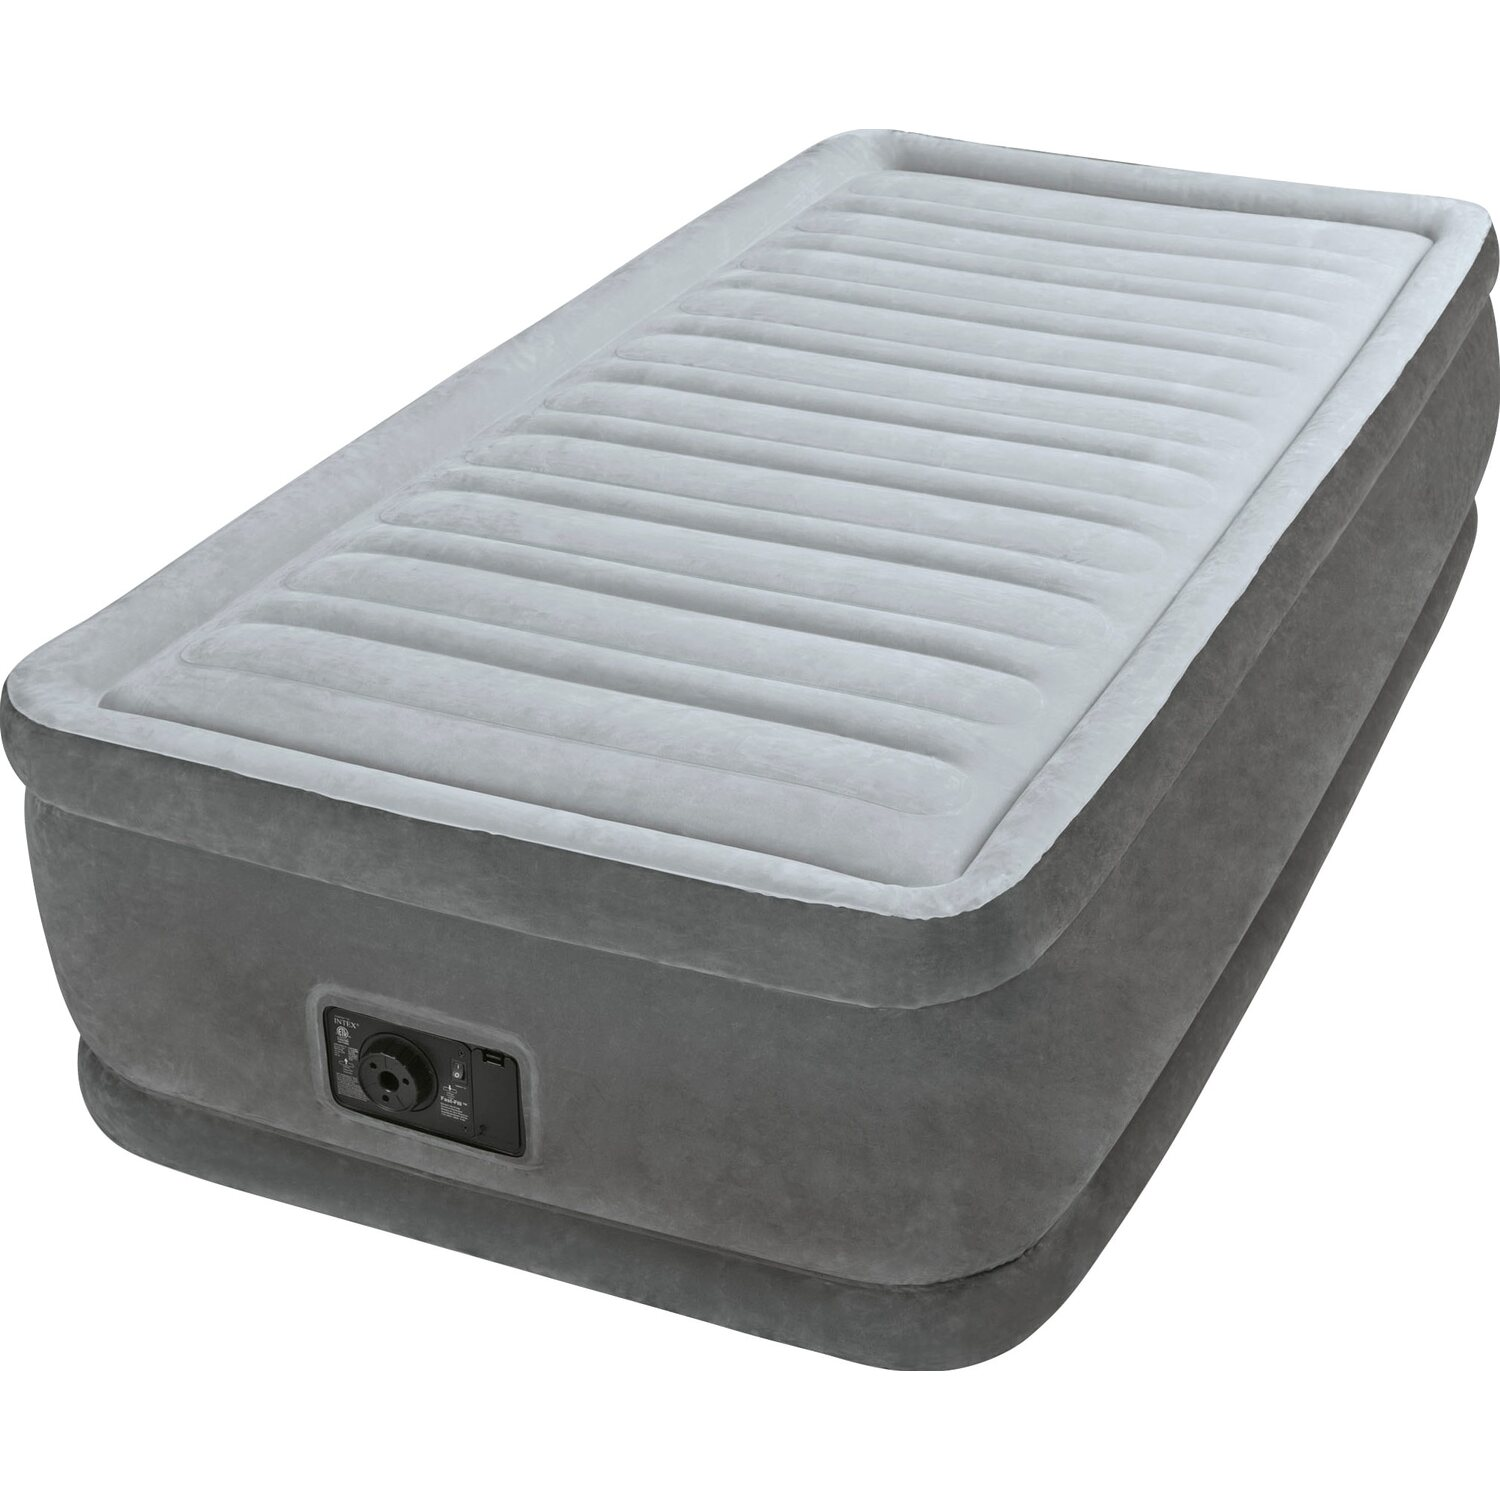 Materasso Letto Gonfiabile Airbed.Intex Materasso Comfort Plush Elevated Singolo 99 Cm X 191 Cm X 46